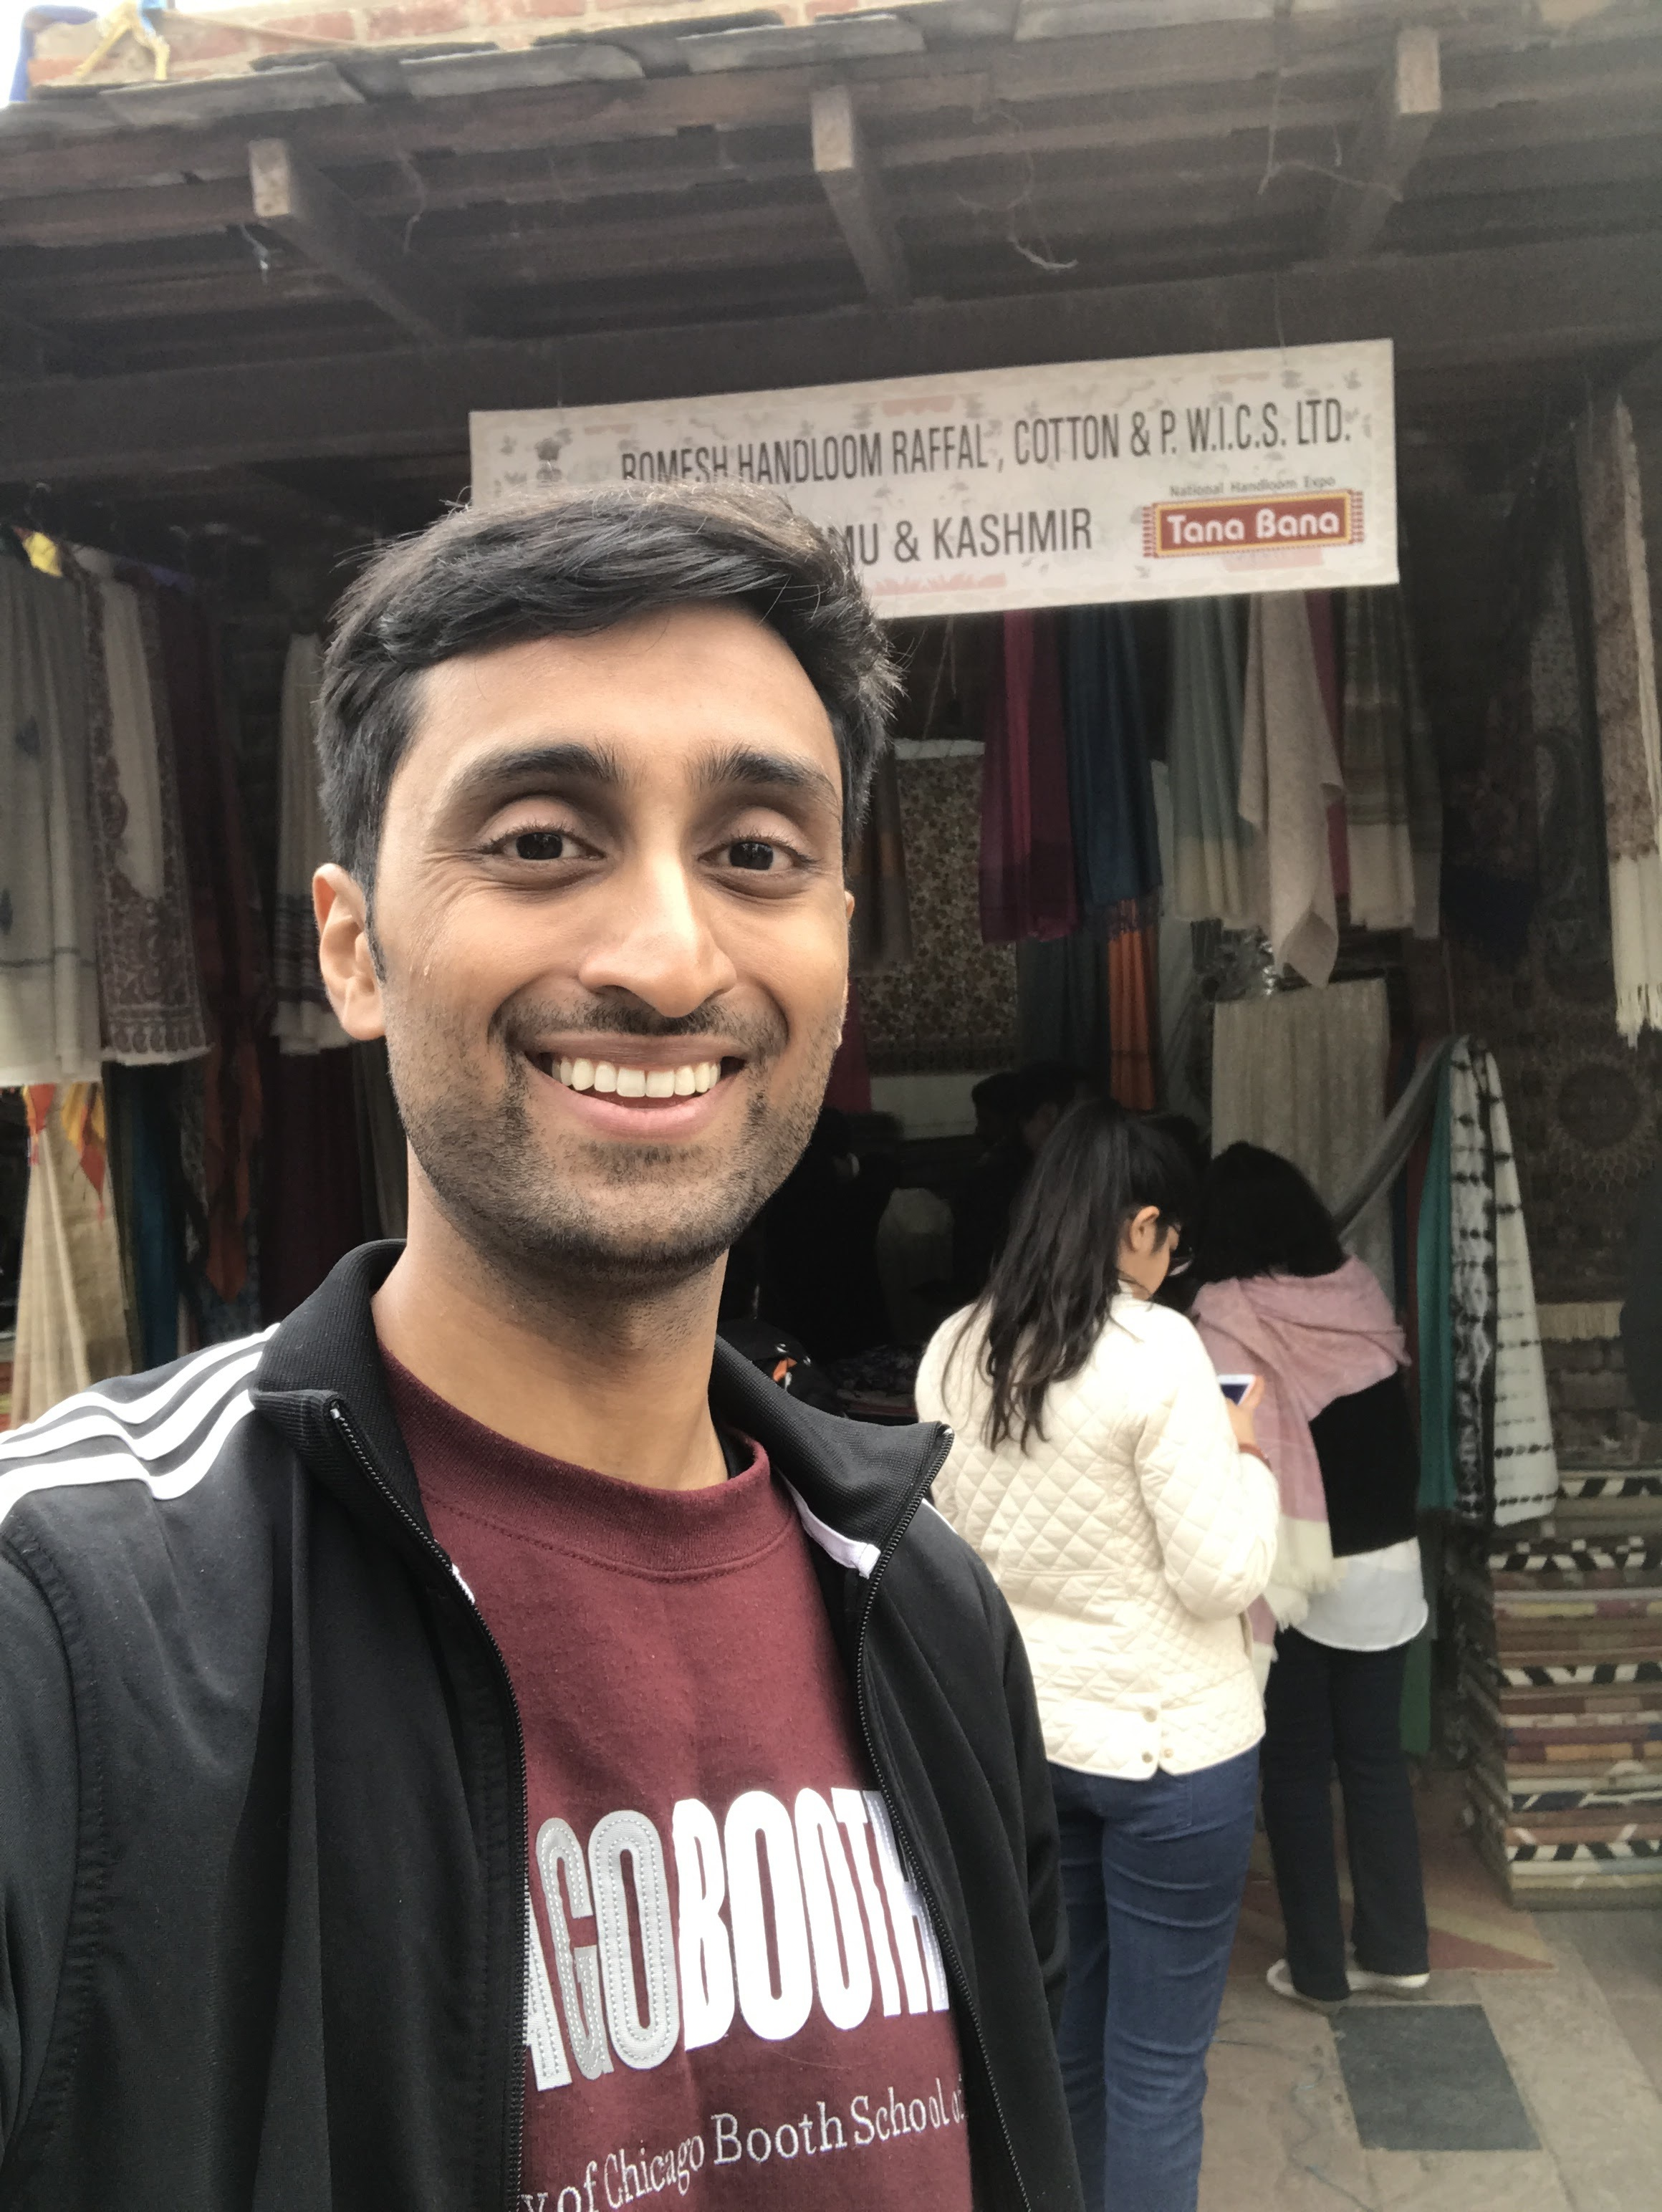 Putting his skills from Negotiations class to work, Pratik walks away with a bargain on Kashmiri shawls!